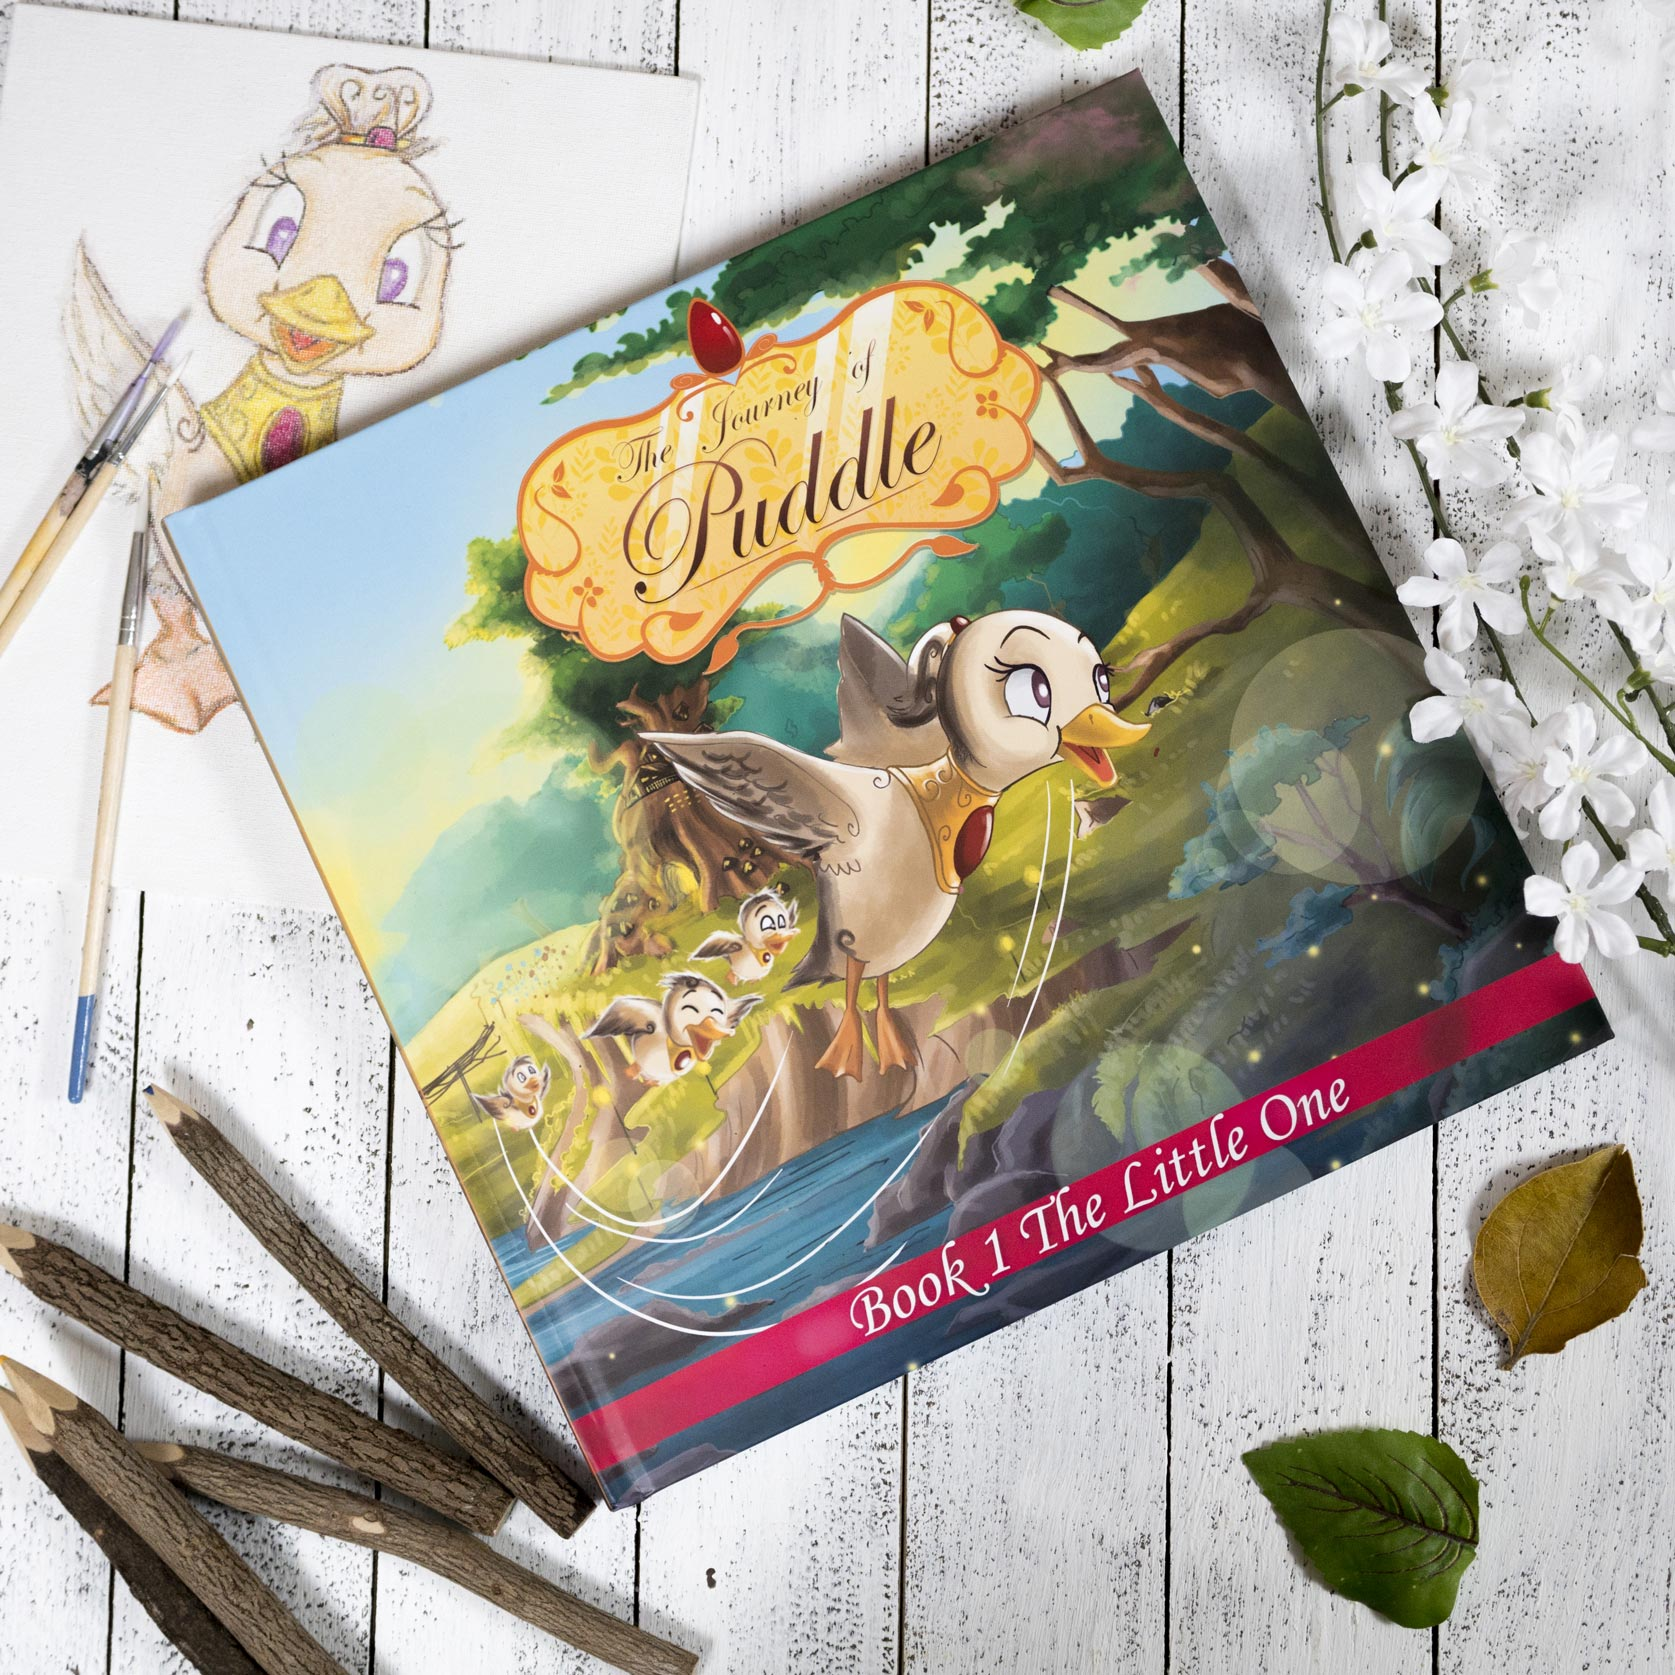 Journey of Puddle - Book 1 - The Little One